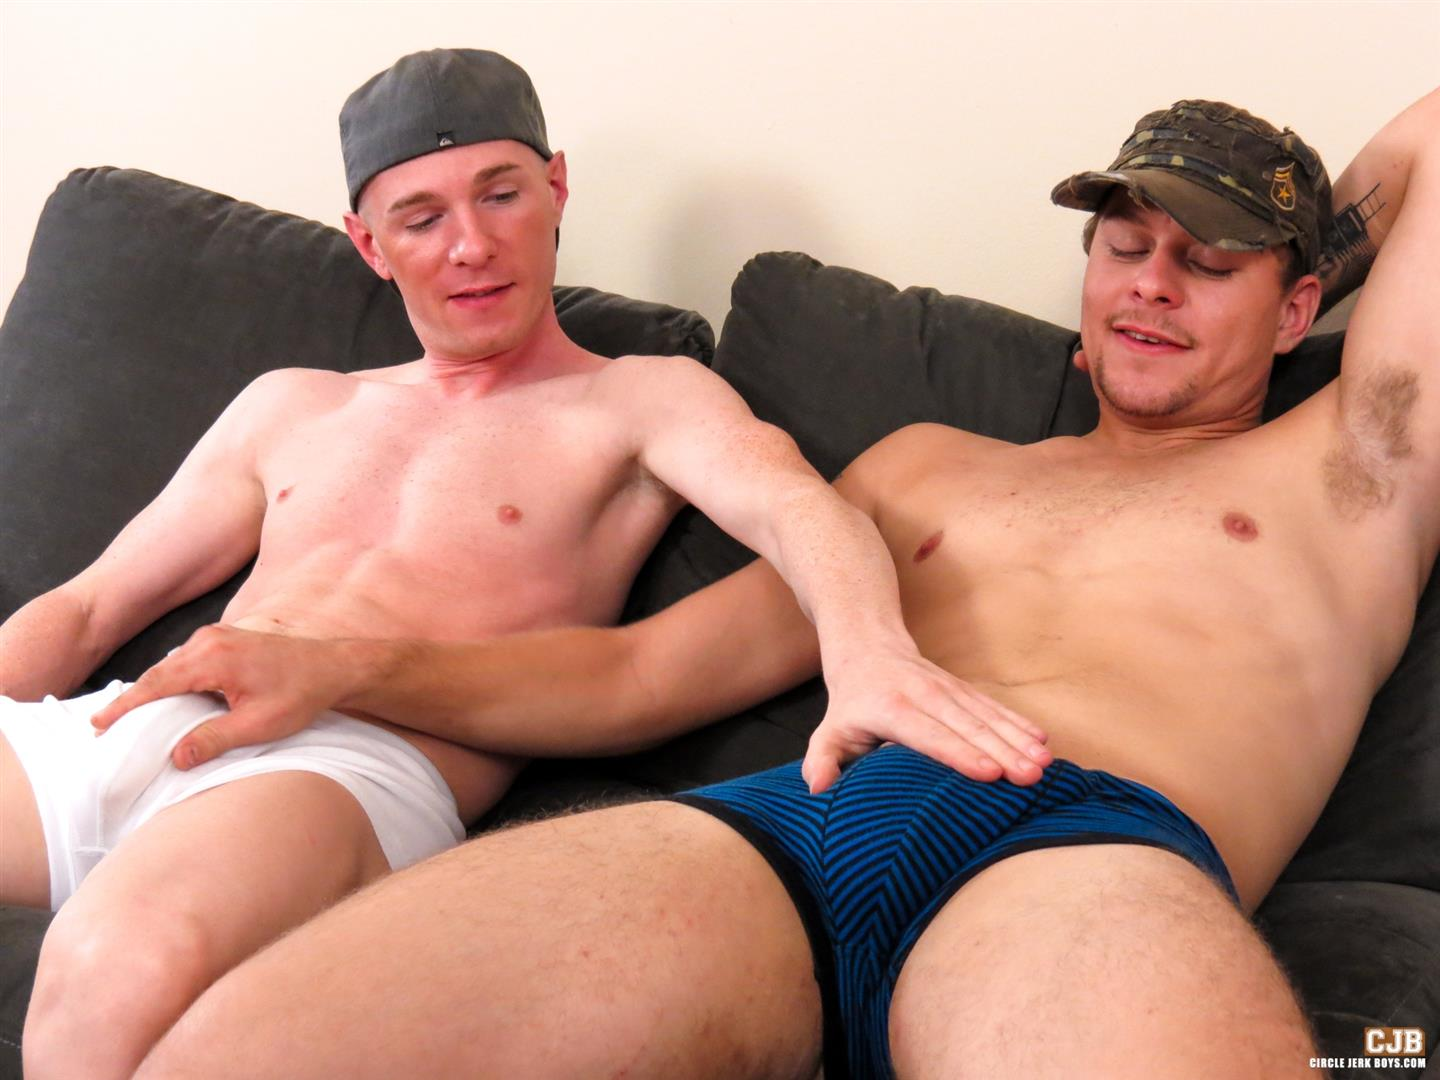 Circle Jerk Boys Isaac Conn and Jesse Idol Country Redneck Buddies Sucking Cock Amateur Gay Porn 02